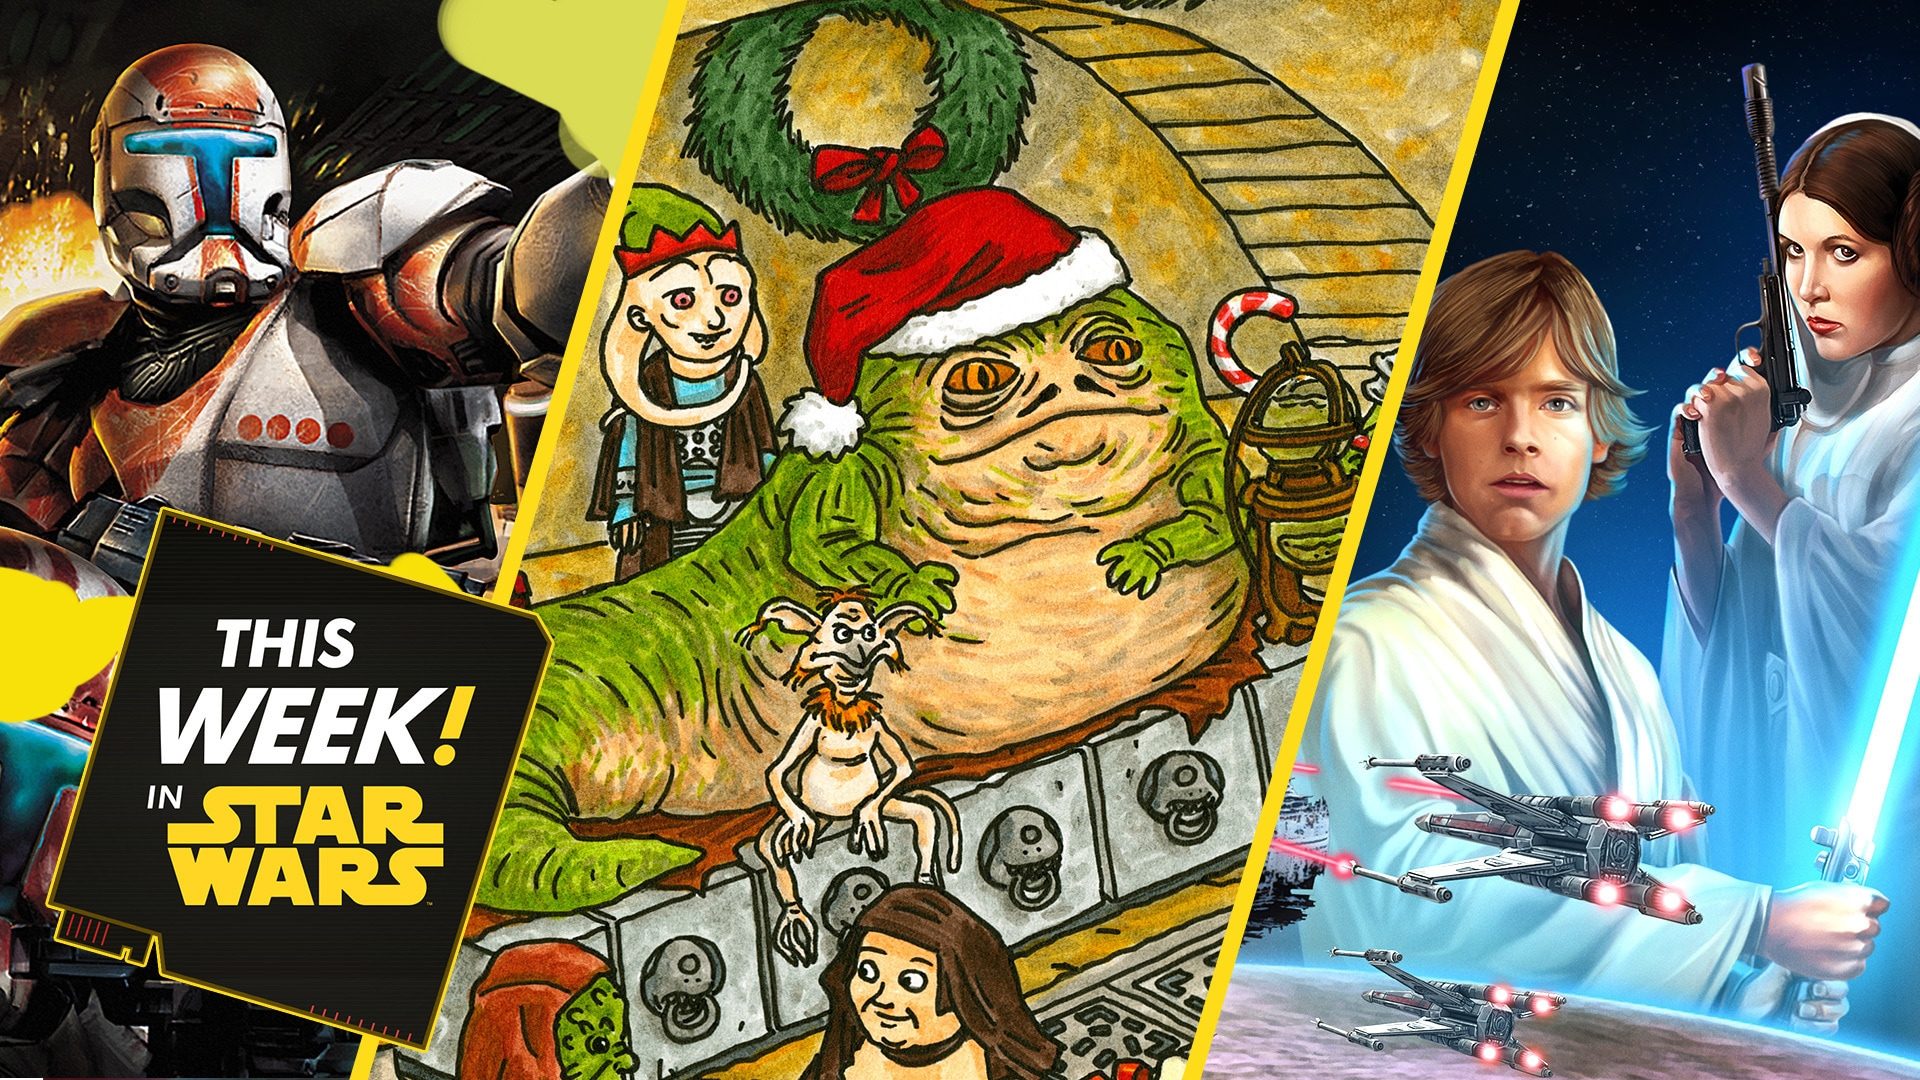 The Bad Batch Report In, We Wish You a Merry Sithmas, and More!